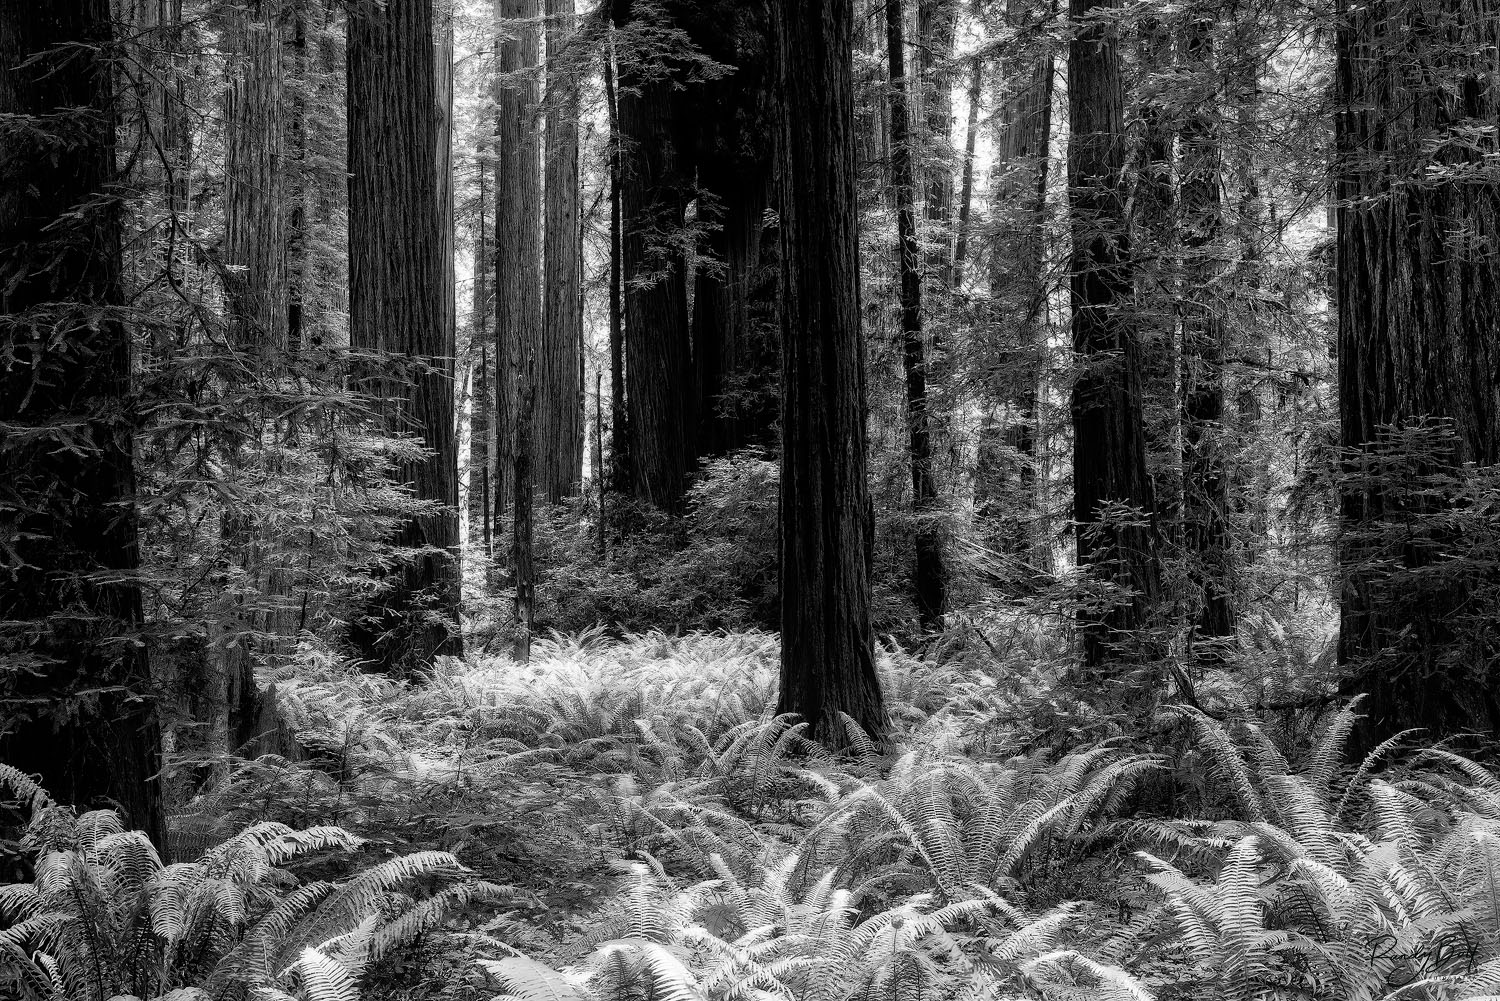 Black and white photograph of Stout Grove in Jedediah Smith State park in northern california.